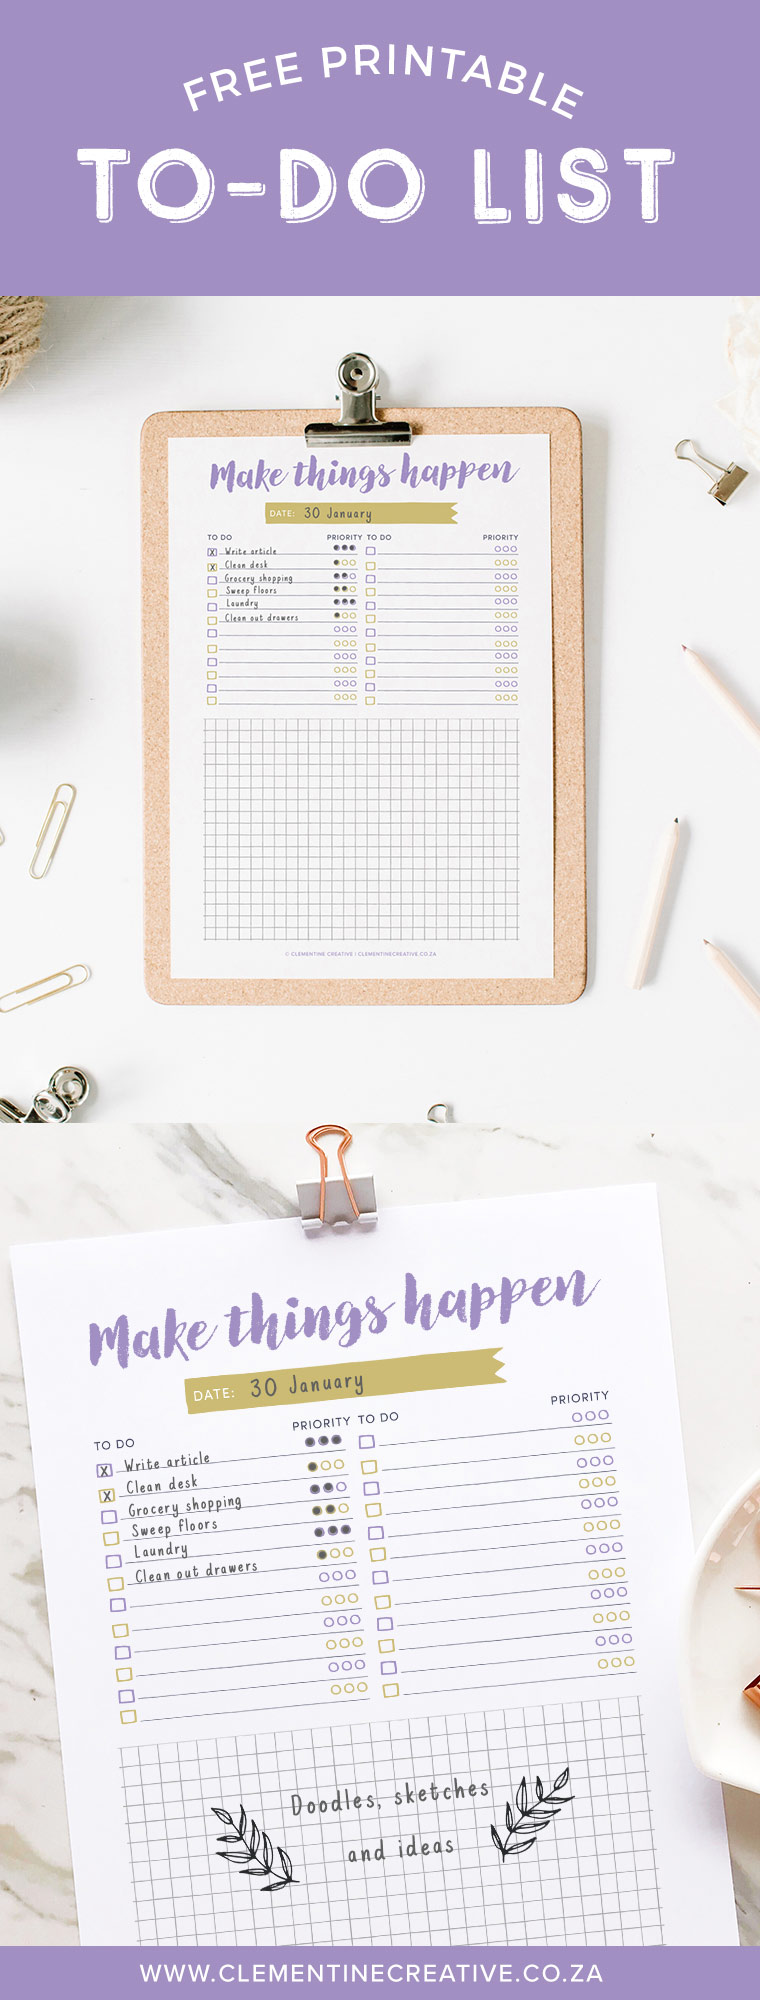 Download this free printable to-do list here to help you prioritize your daily tasks. It even includes a nice large area to write down ideas, sketches and doodles.